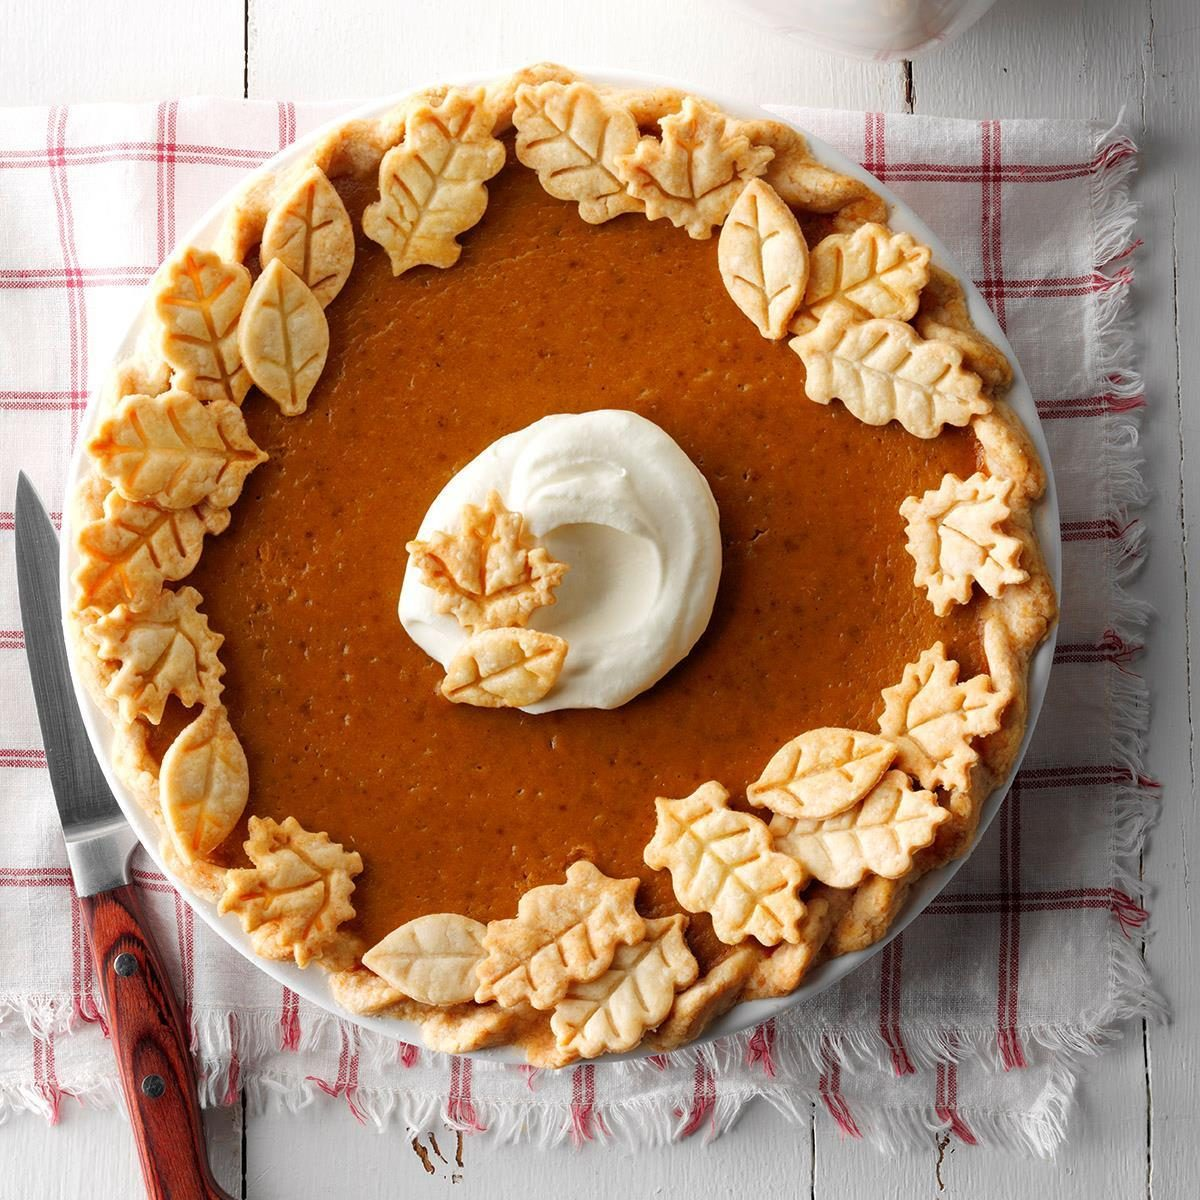 Our Top 10 Pumpkin Pie Recipes